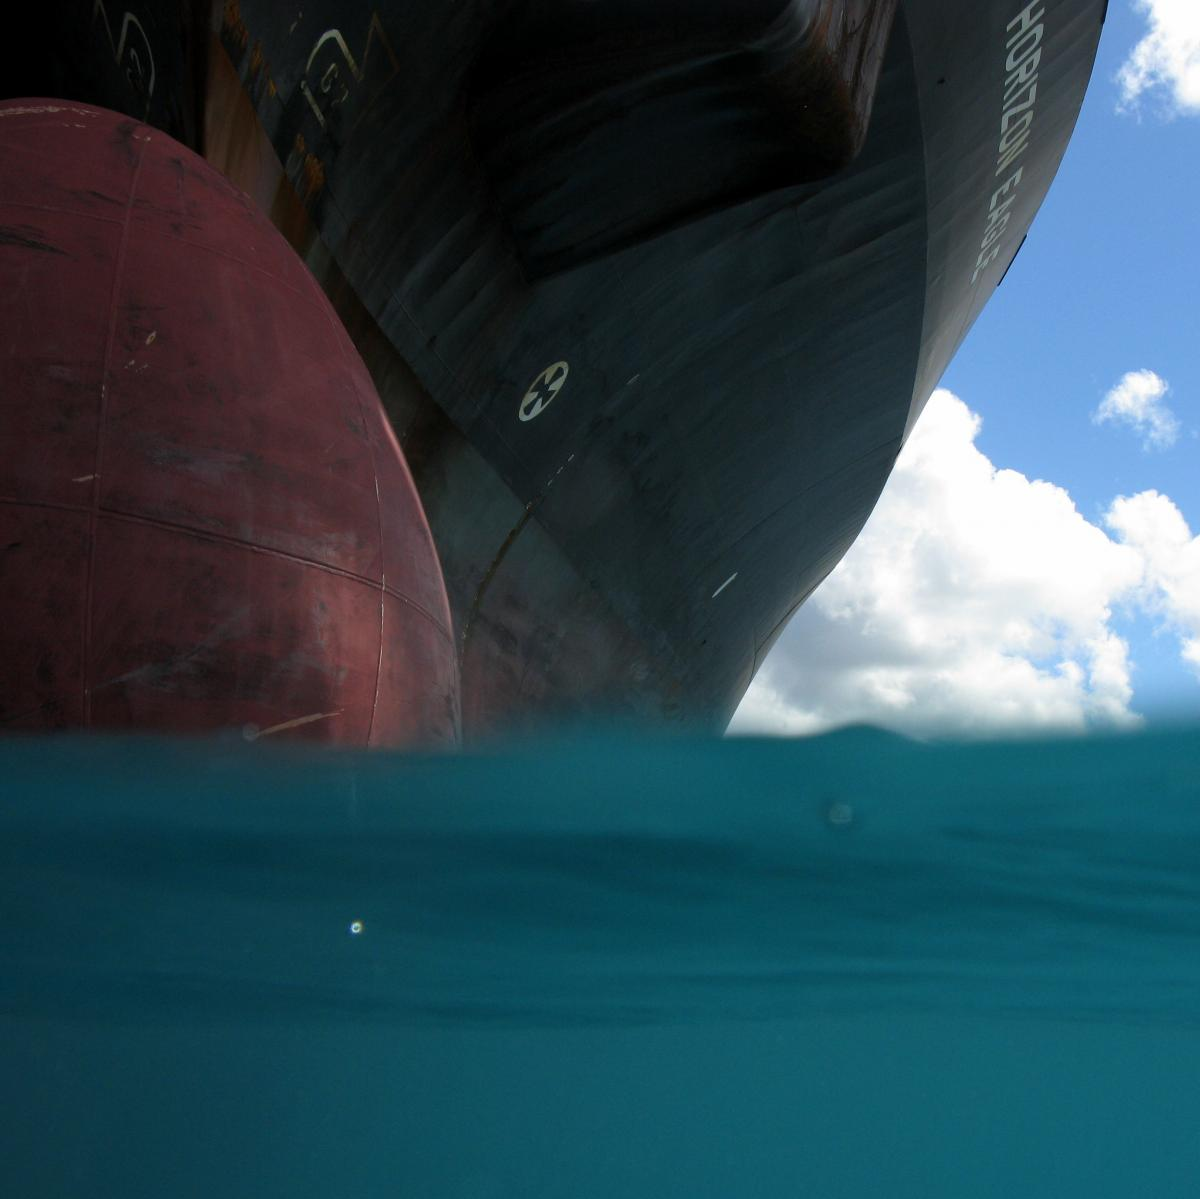 A diver's view of a ship